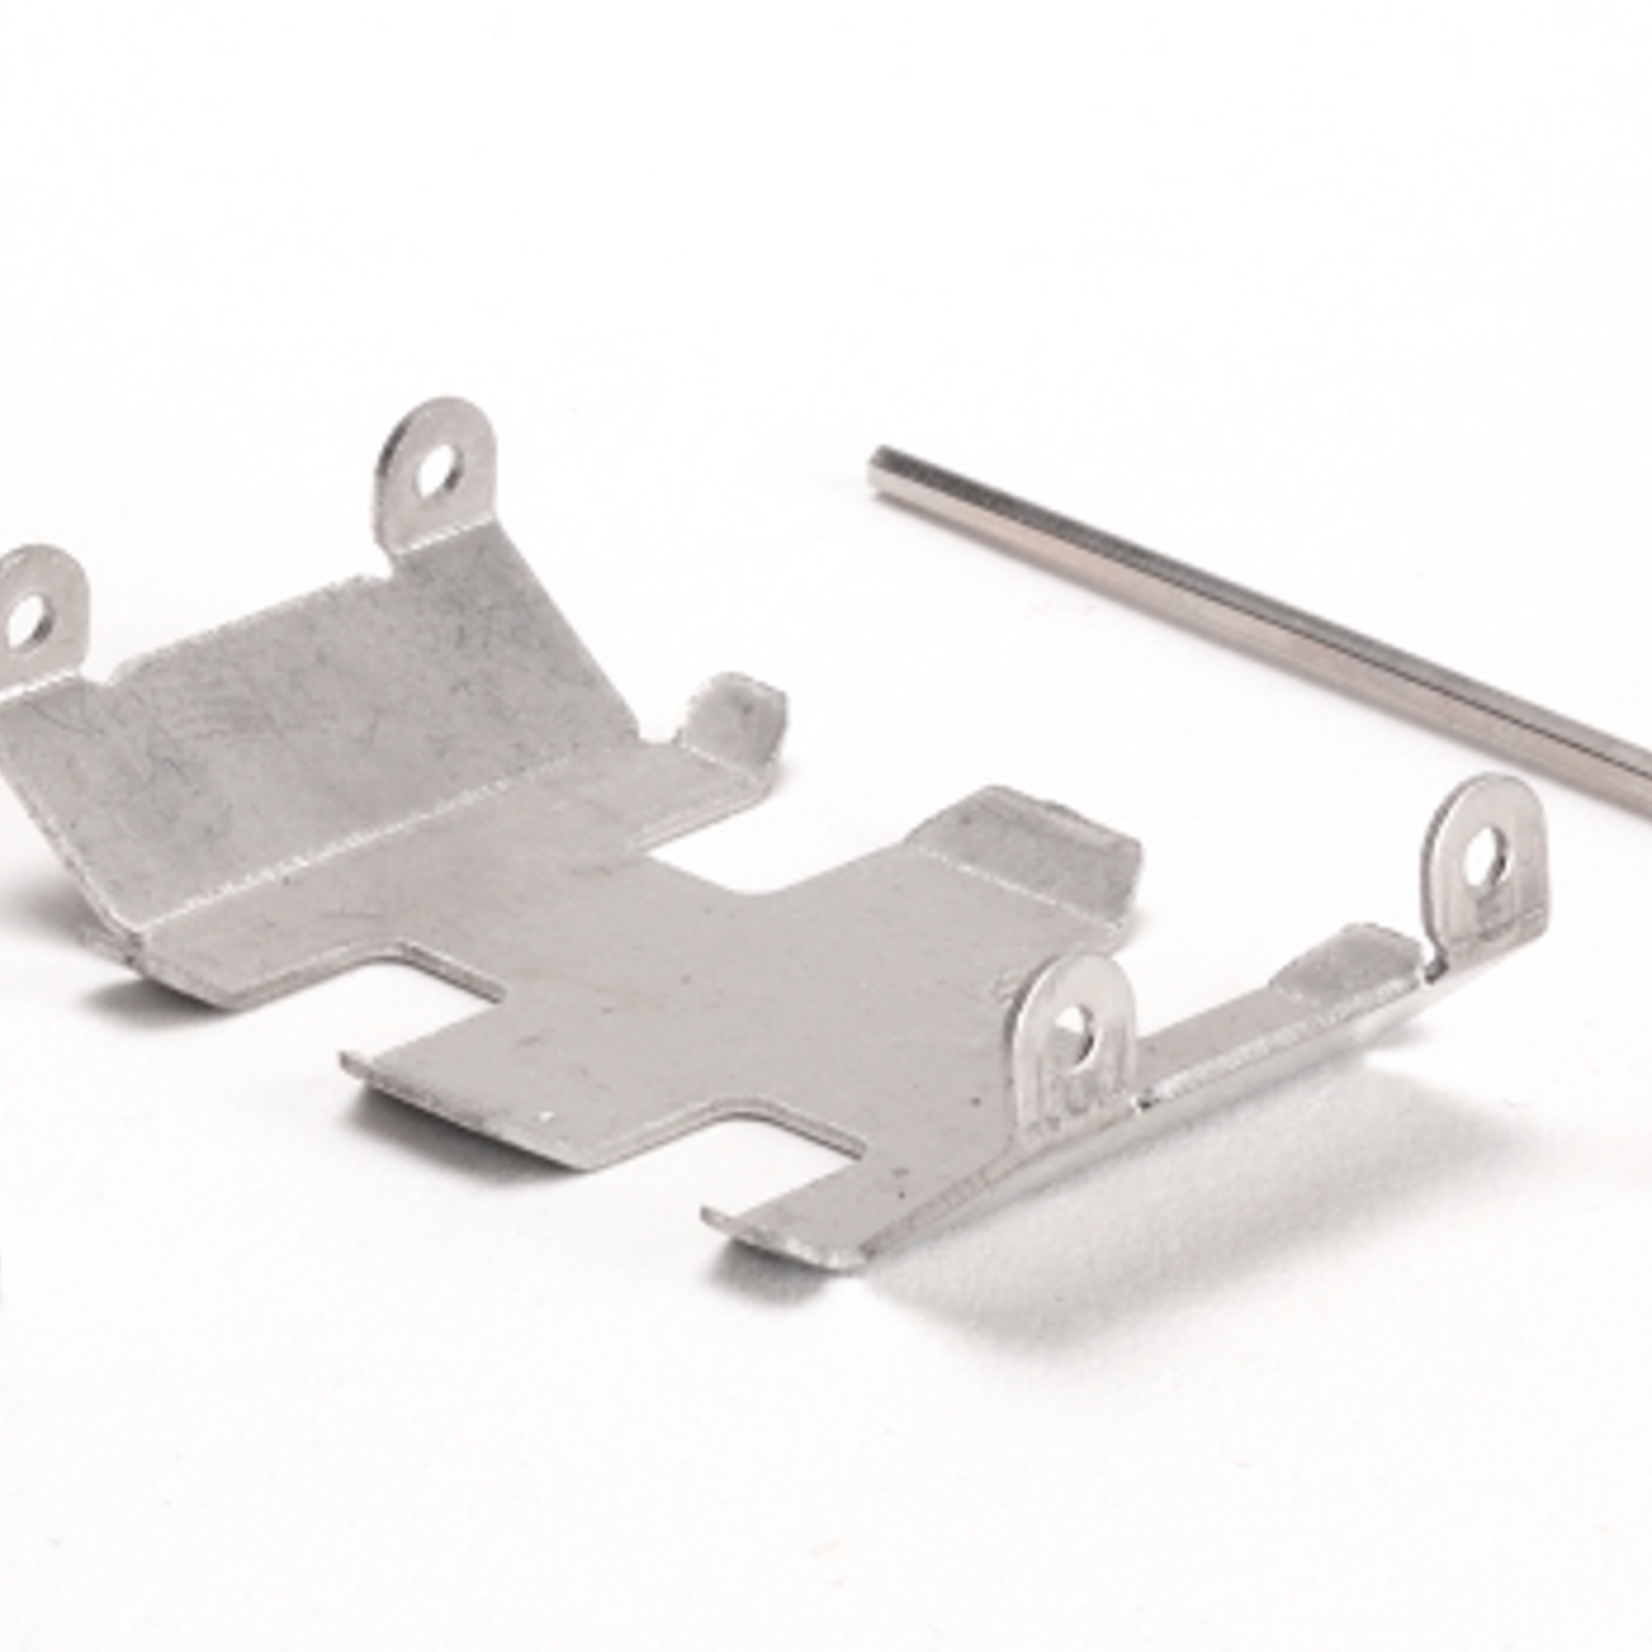 Hobby Details DTSCX24-2 Hobby Details Axial SCX24 Stainless Steel Chassis Armor Guard Plate 1pc